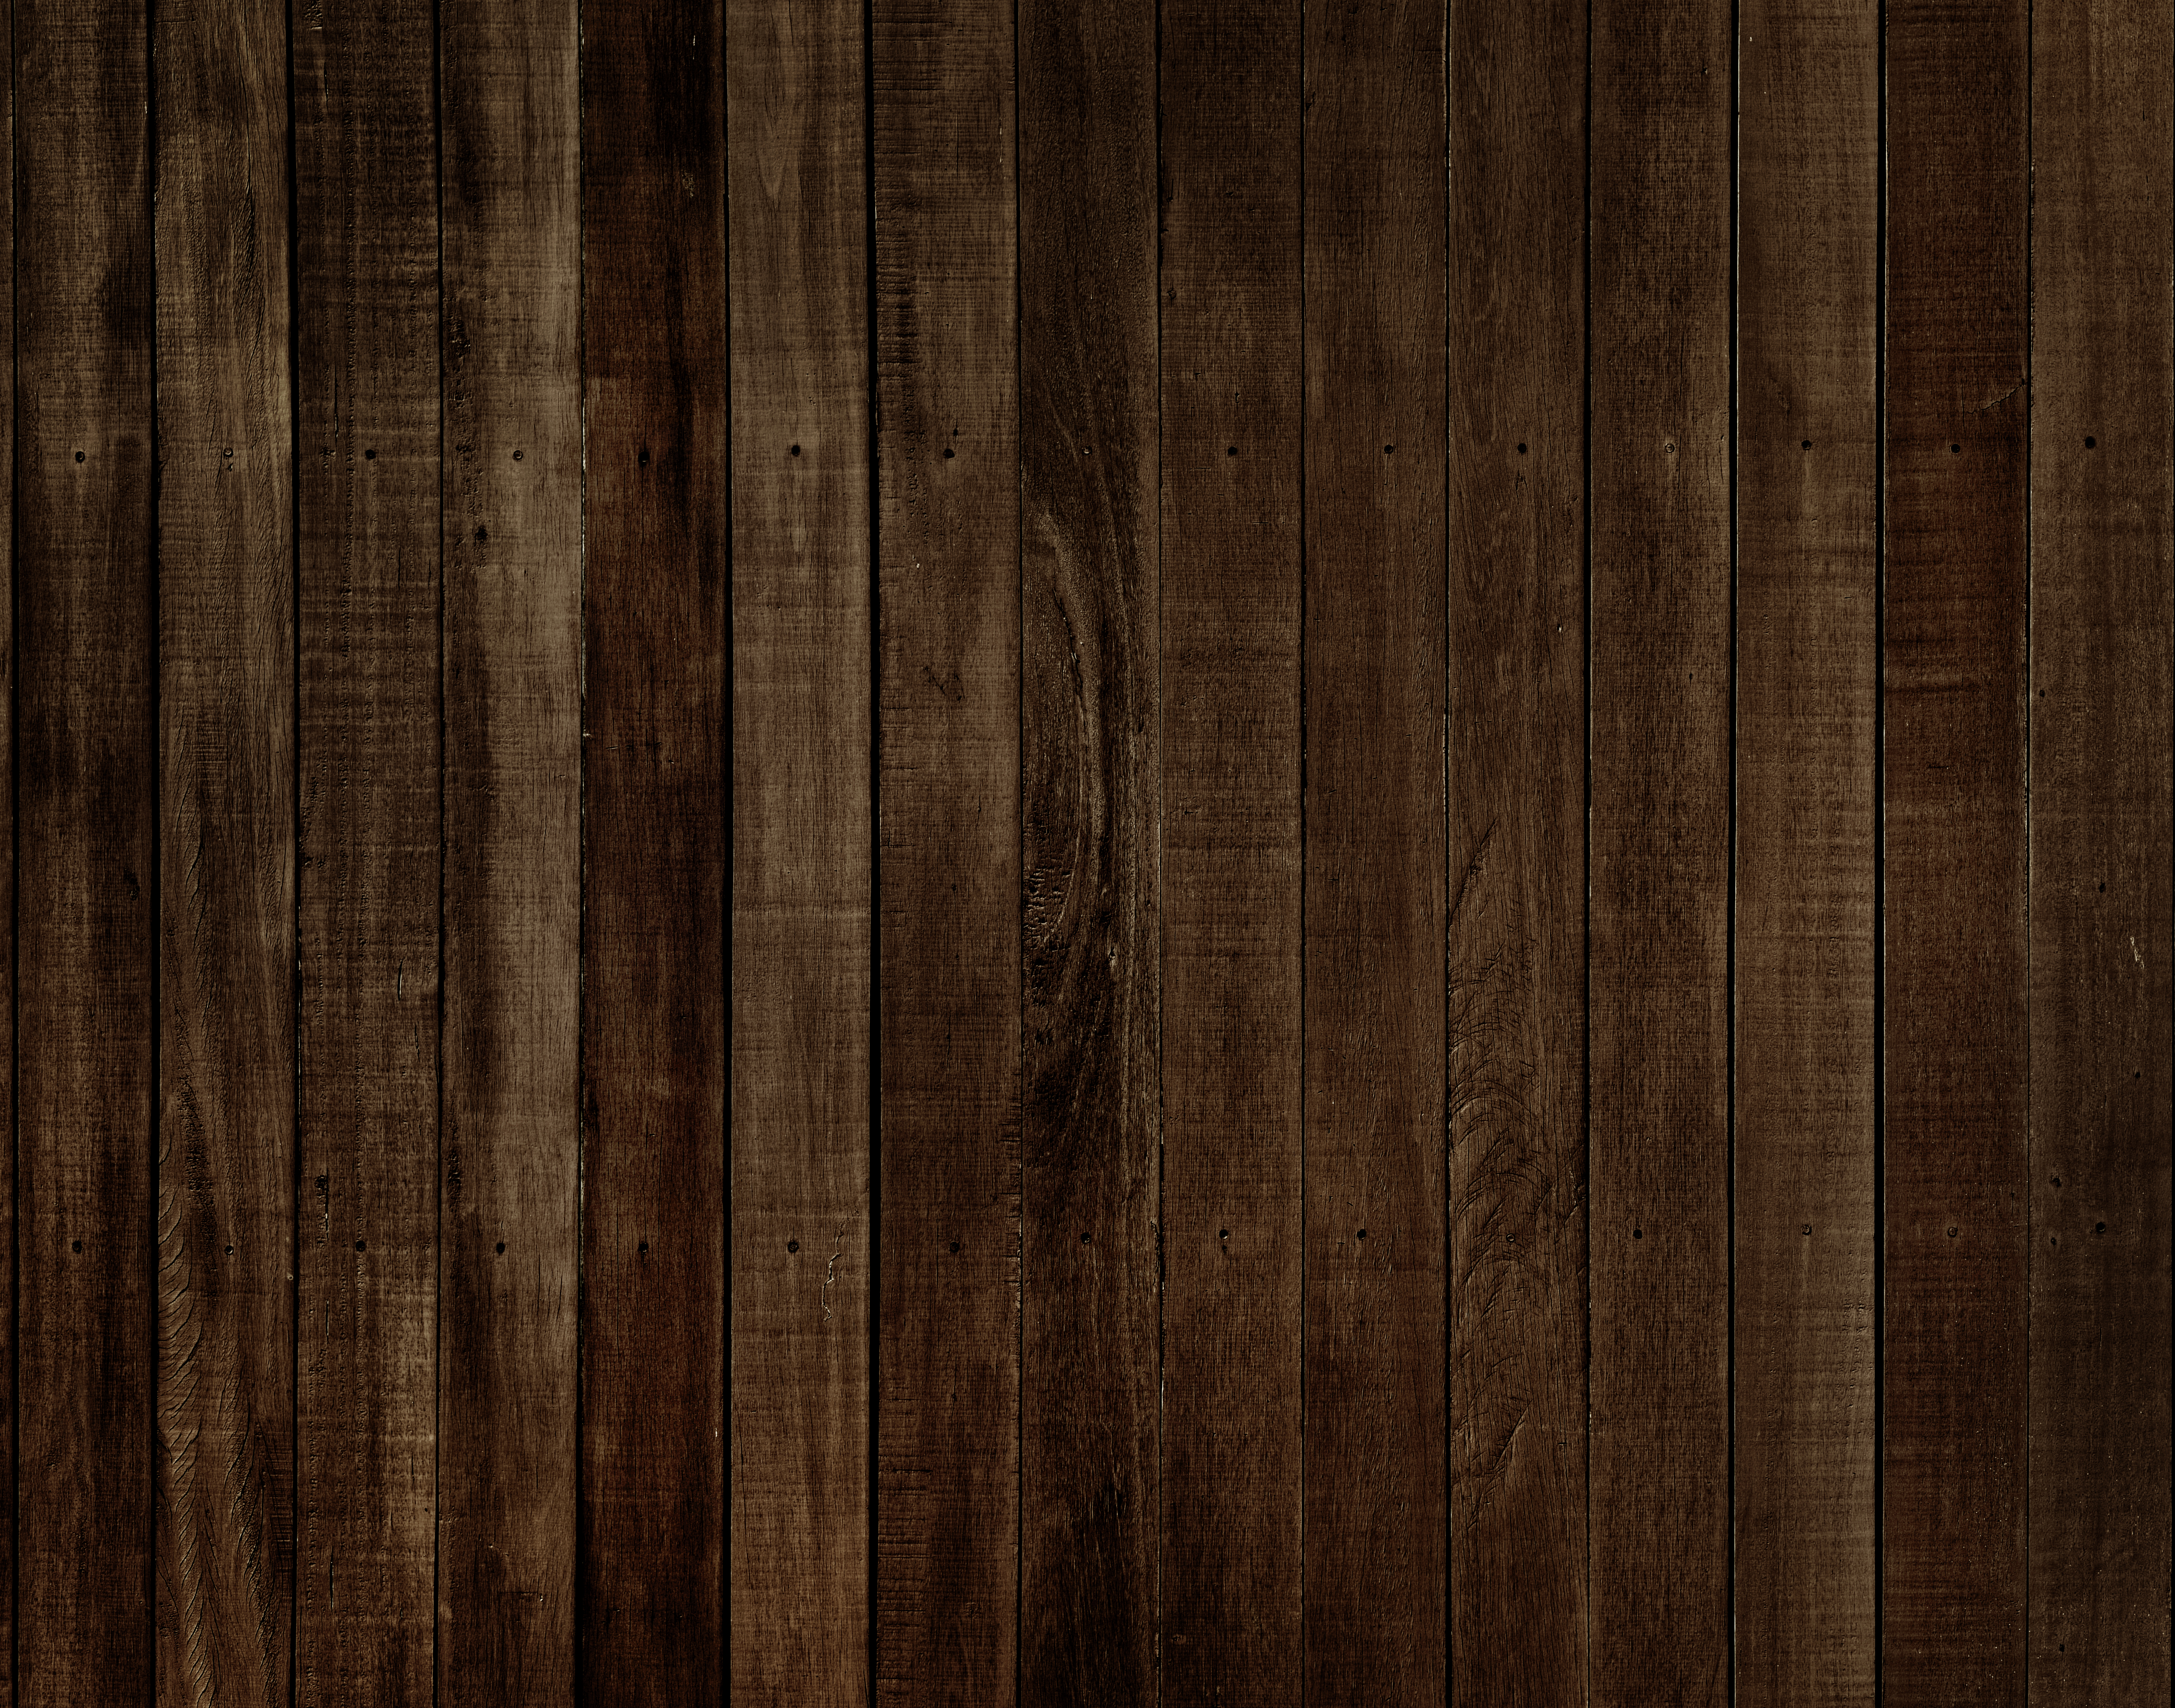 Background: Dark Wood Background. Dark Wood Background